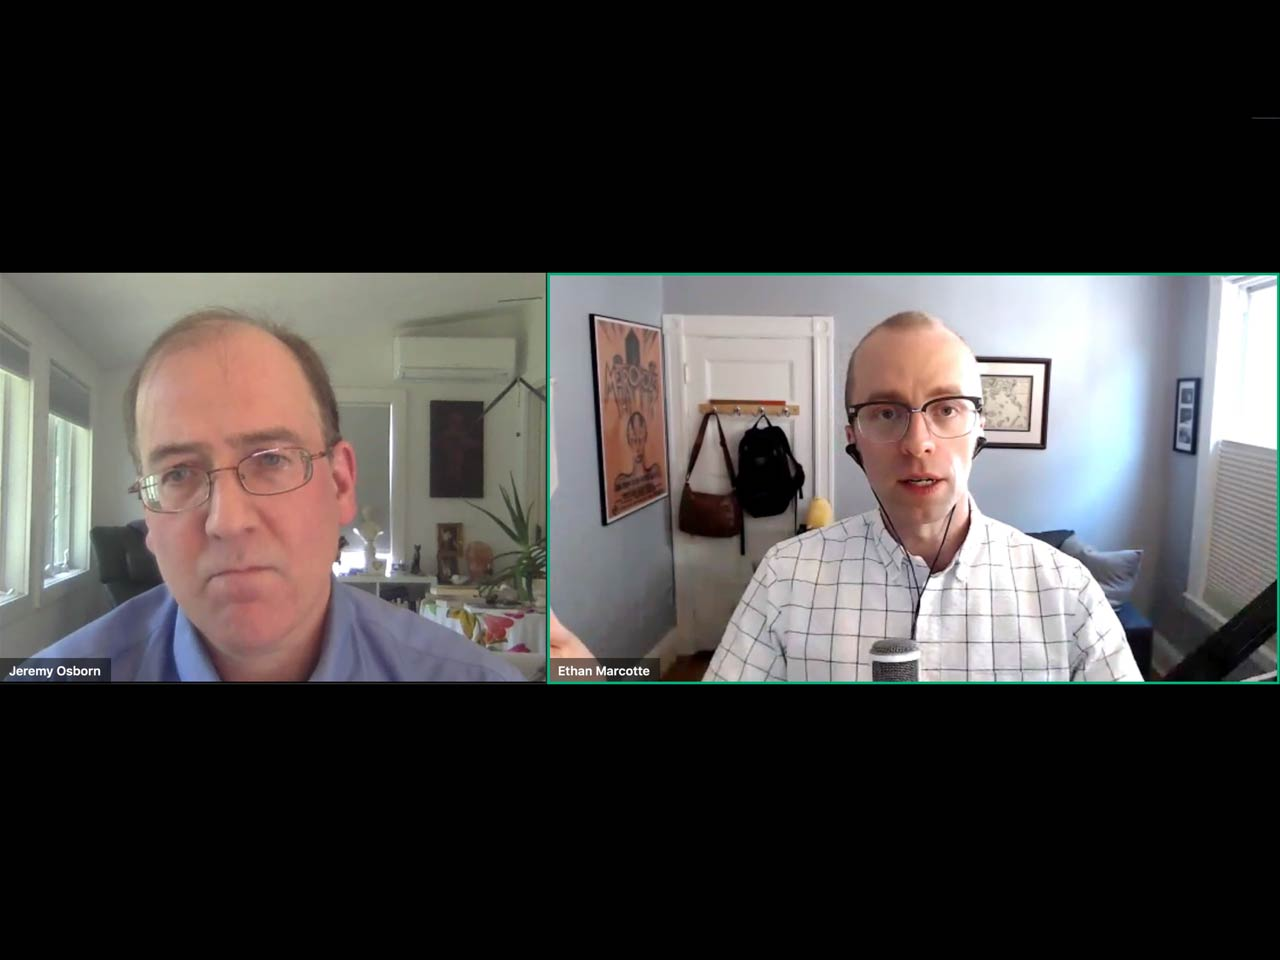 A Decade of Responsive Web Design with Ethan Marcotte